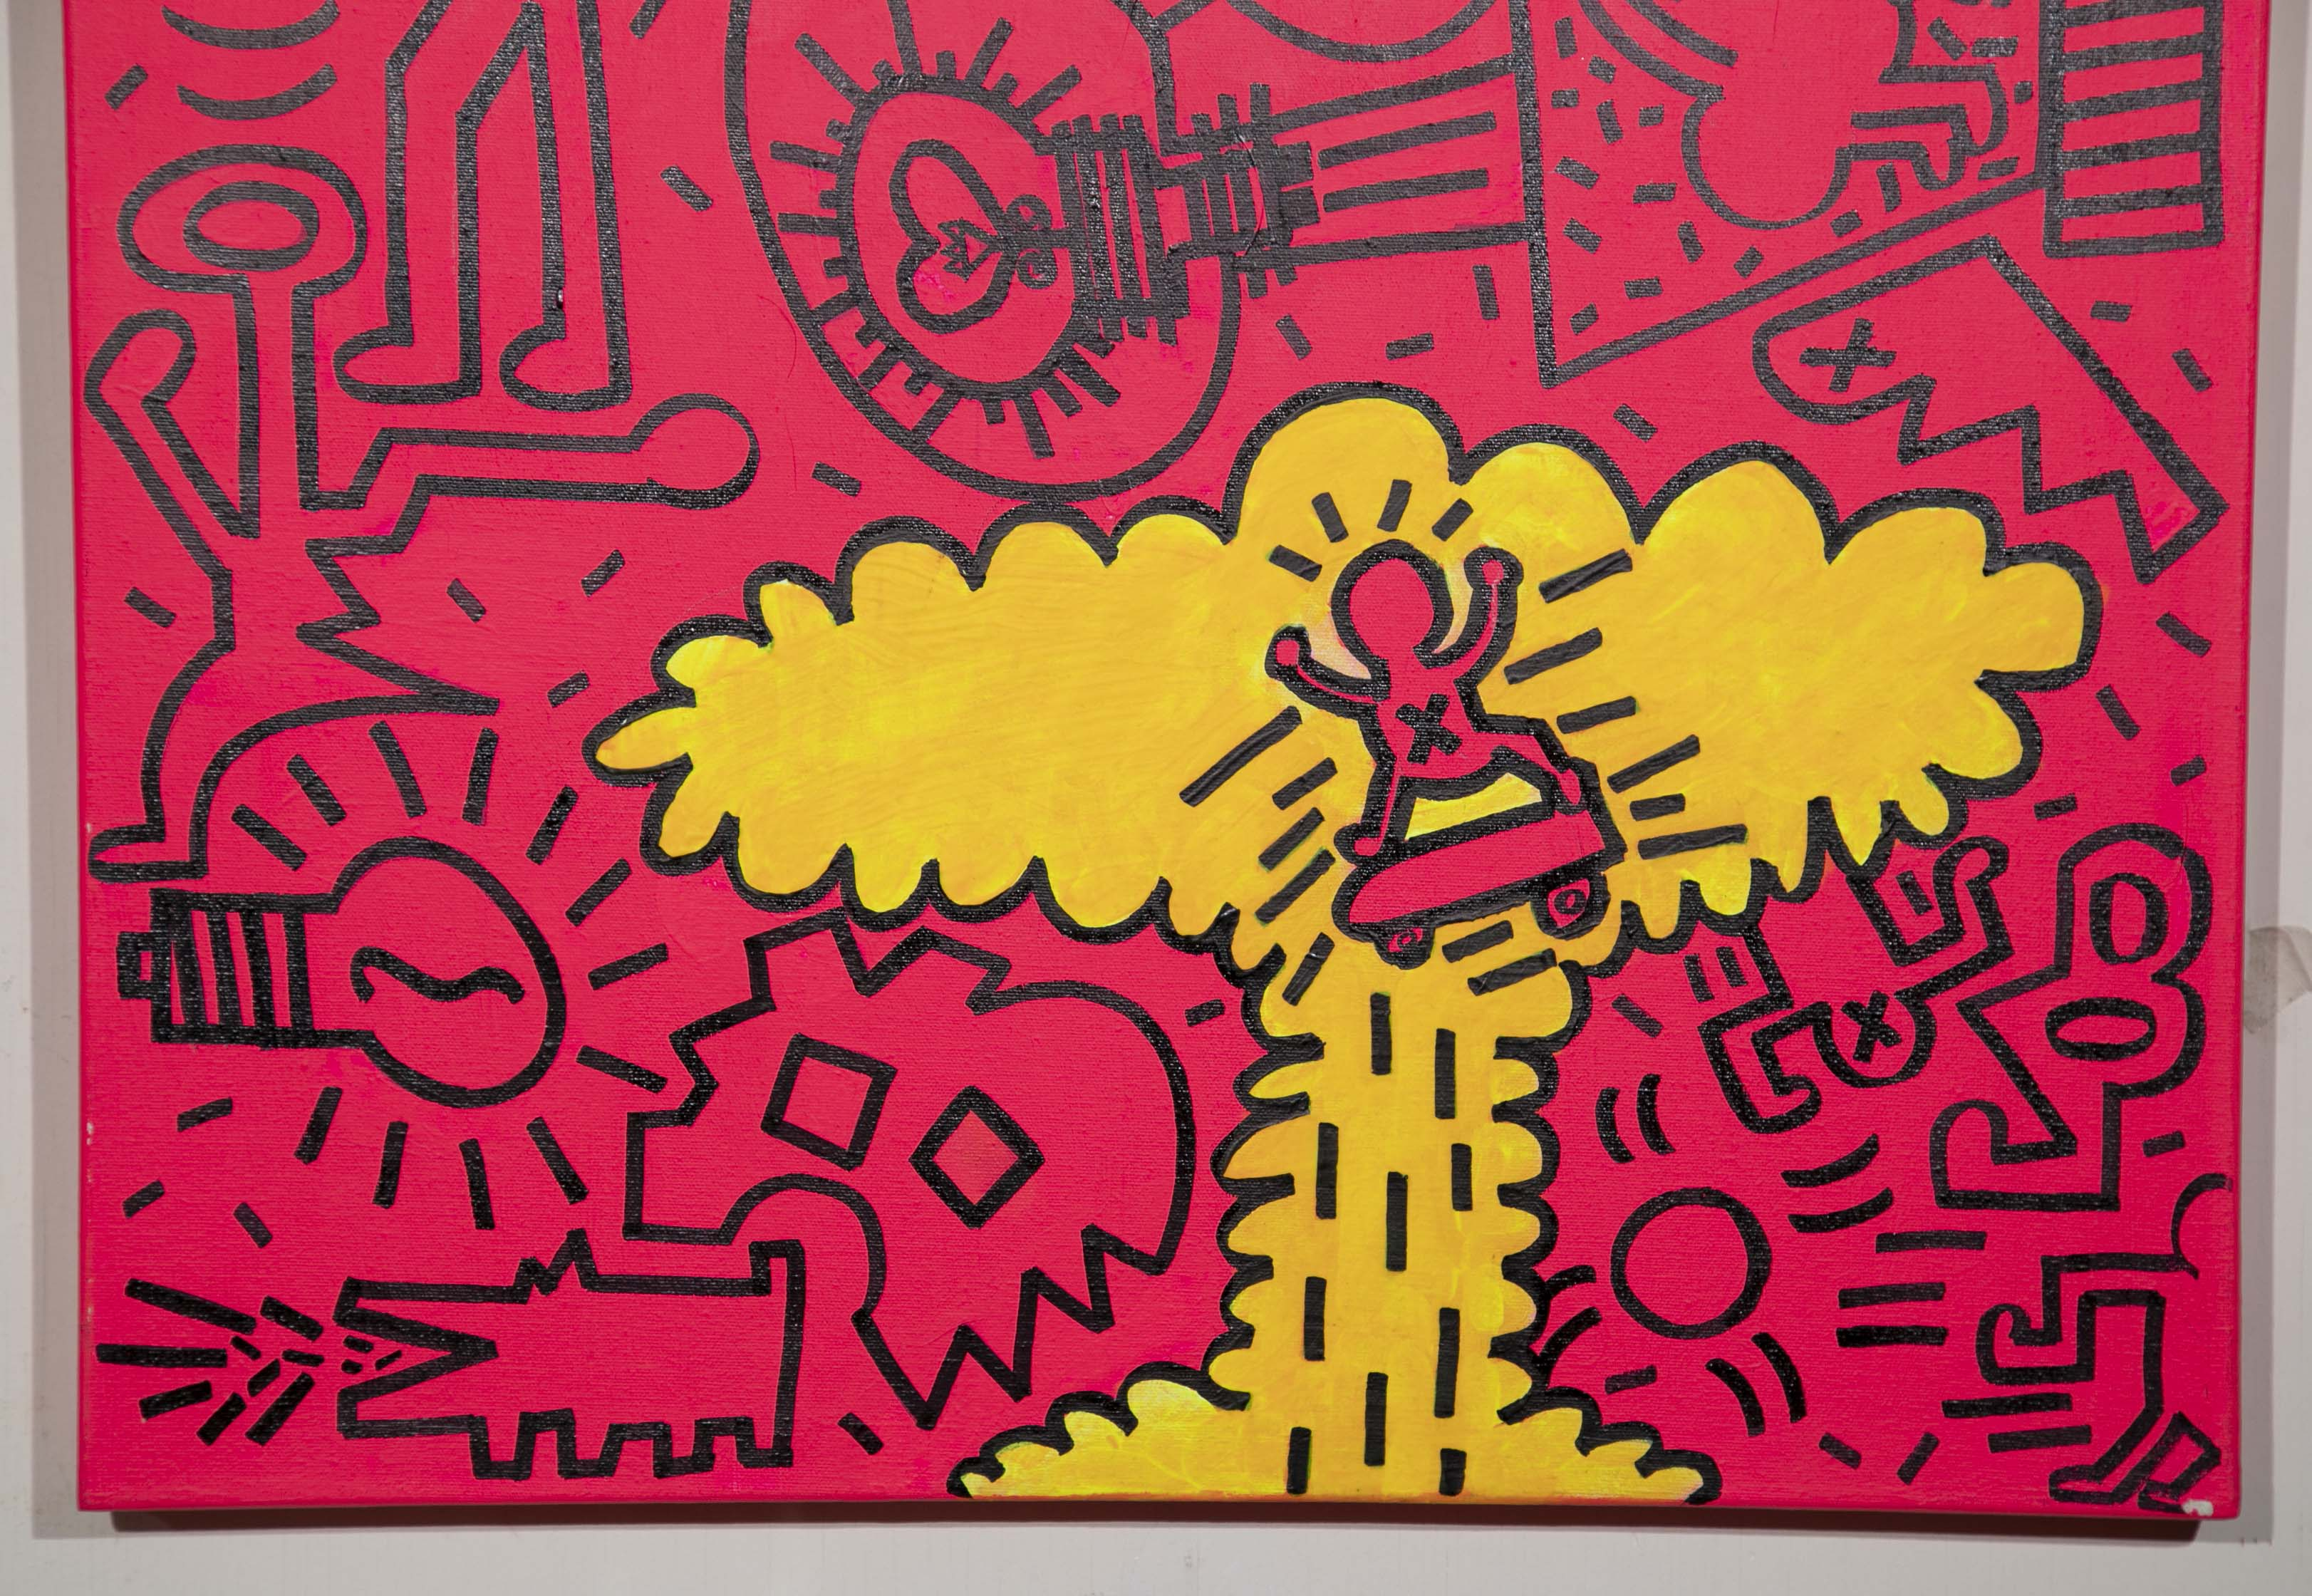 Acrylic Painting In The Manner Of Keith Haring – Avery & Dash ...